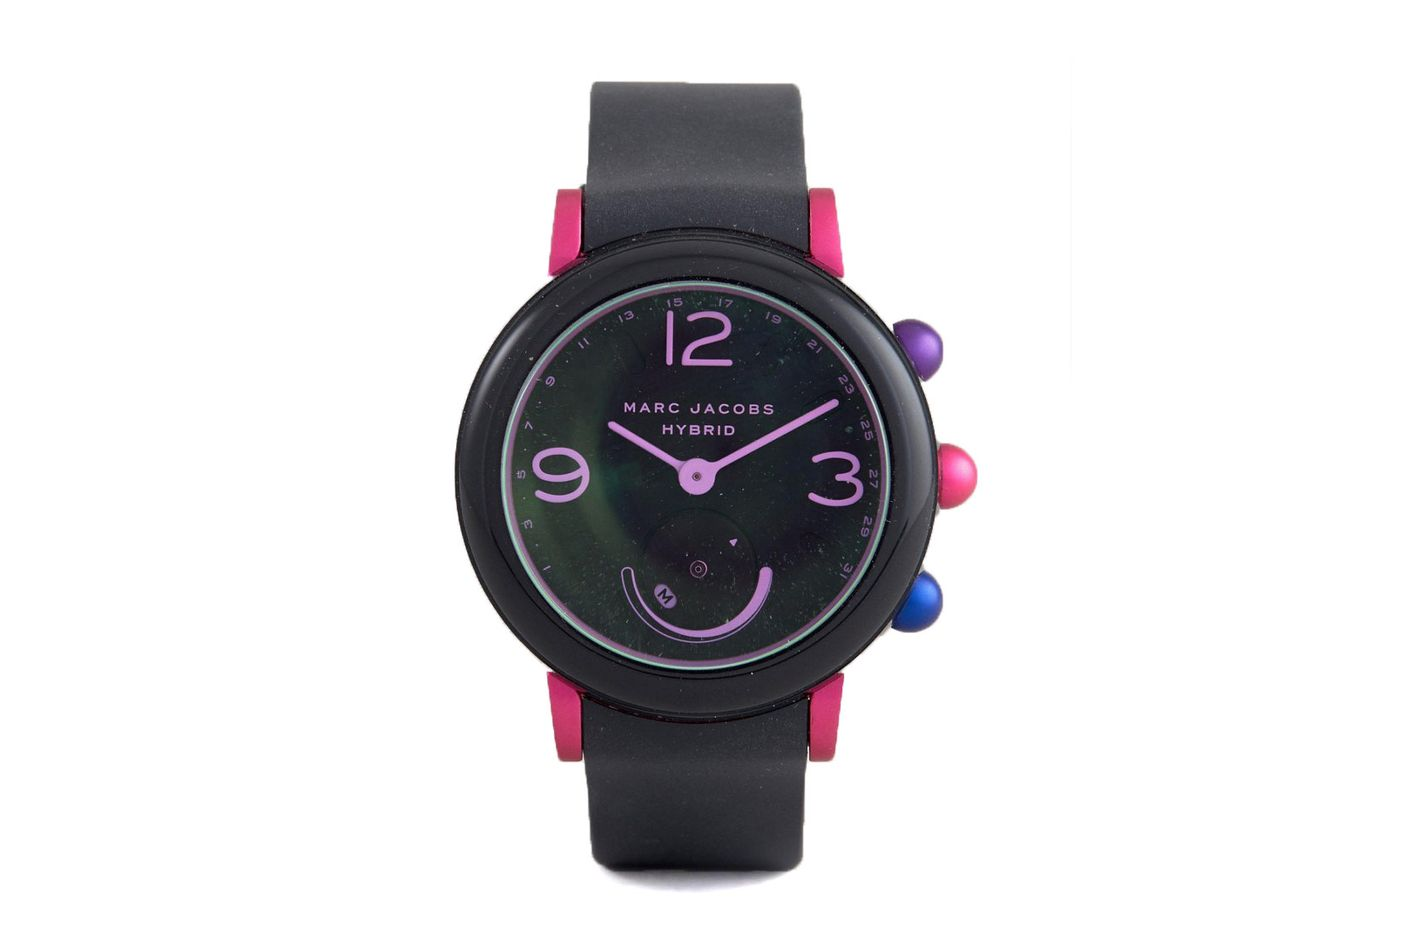 Marc Jacobs MJT1003 Hybrid Smart Watch In Black